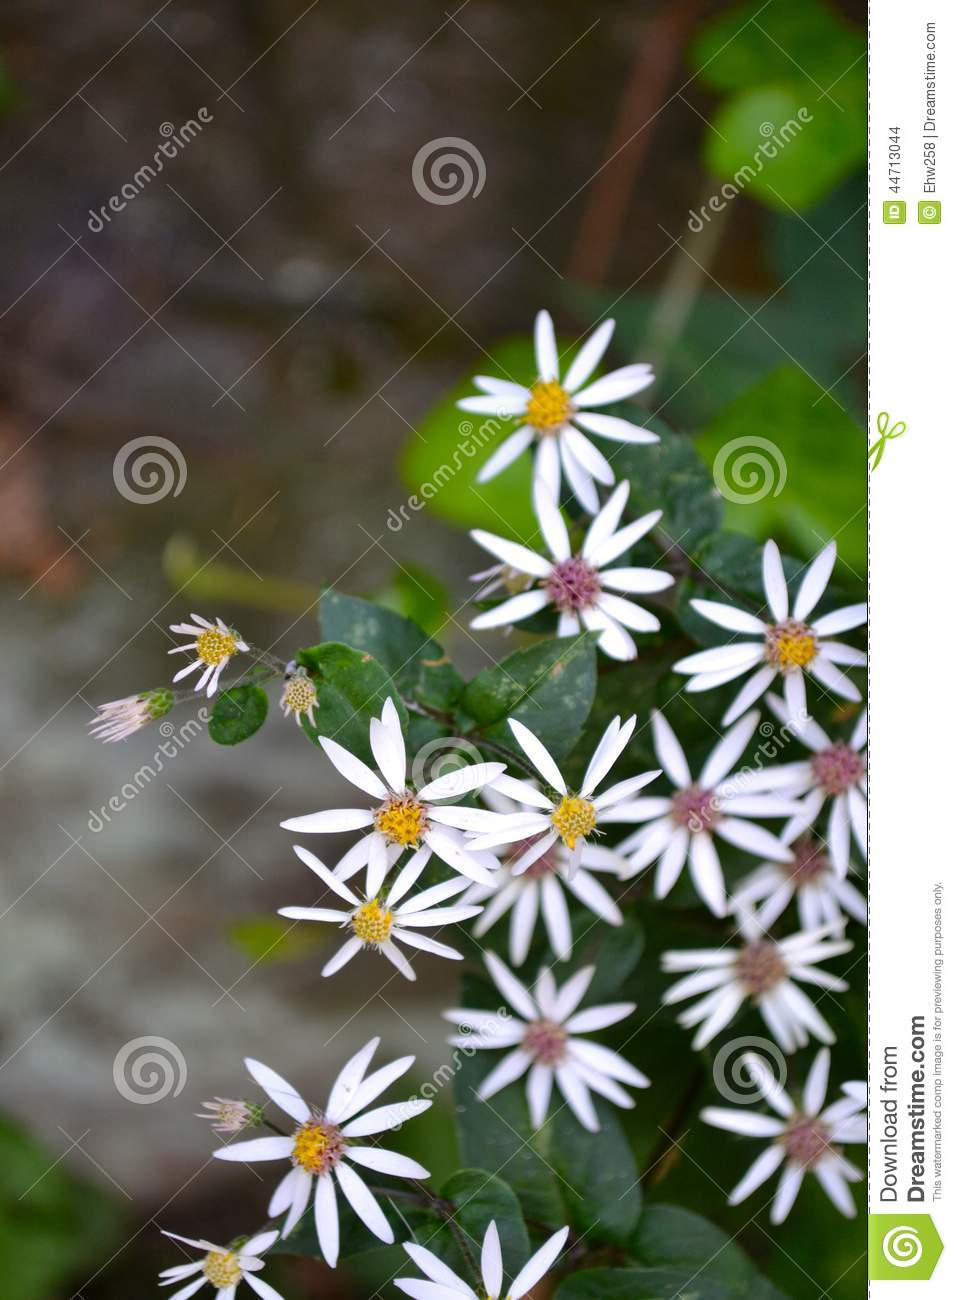 Small White Flowers Yellow Pink Centers Stock Photo Image Of